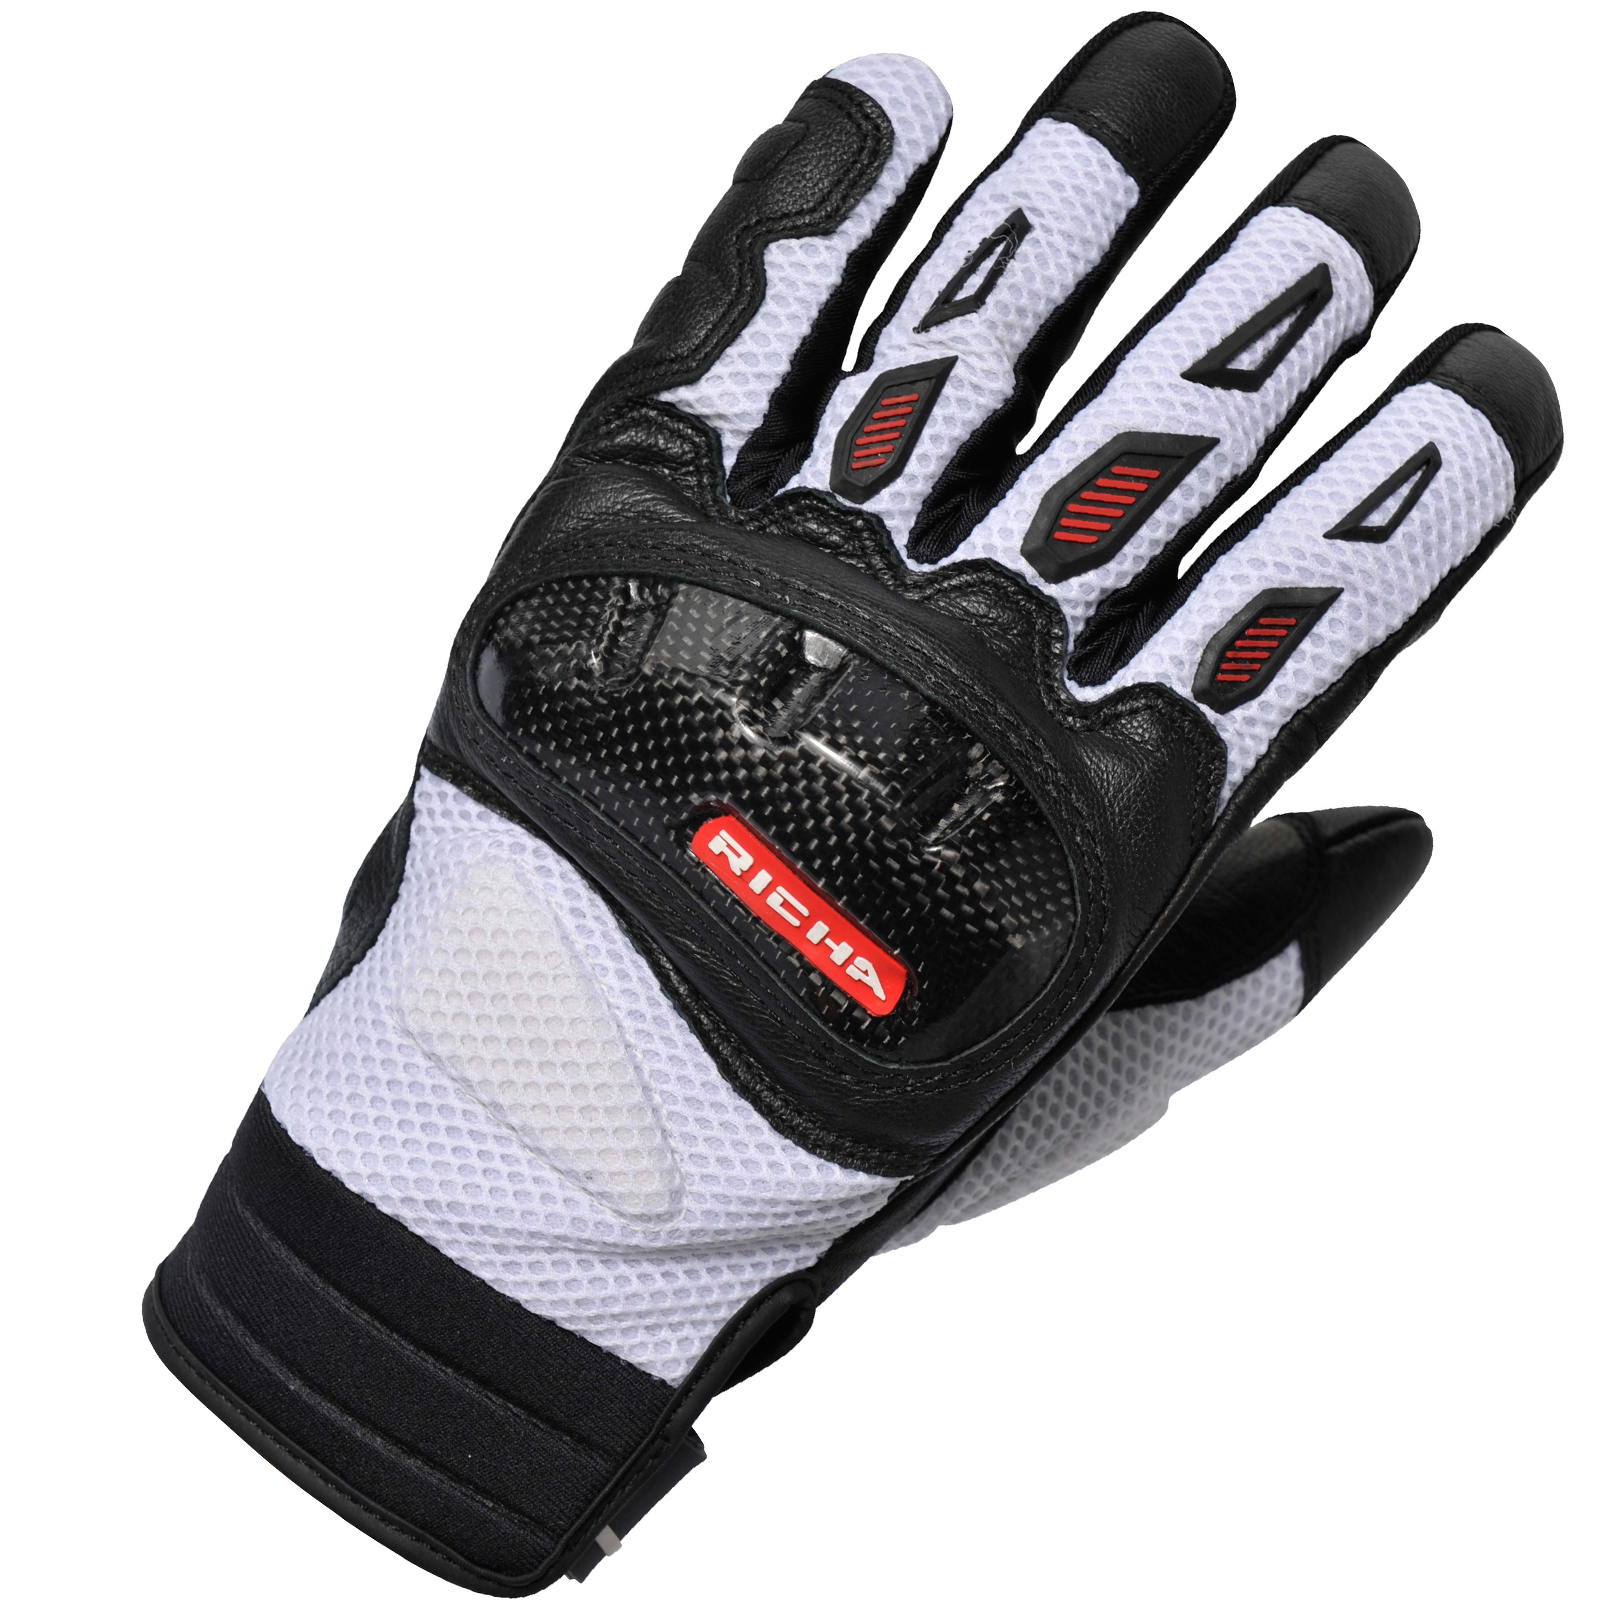 Motorcycle gloves richa - Richa Torsion Motorcycle Gloves Leather Air Guard Mesh